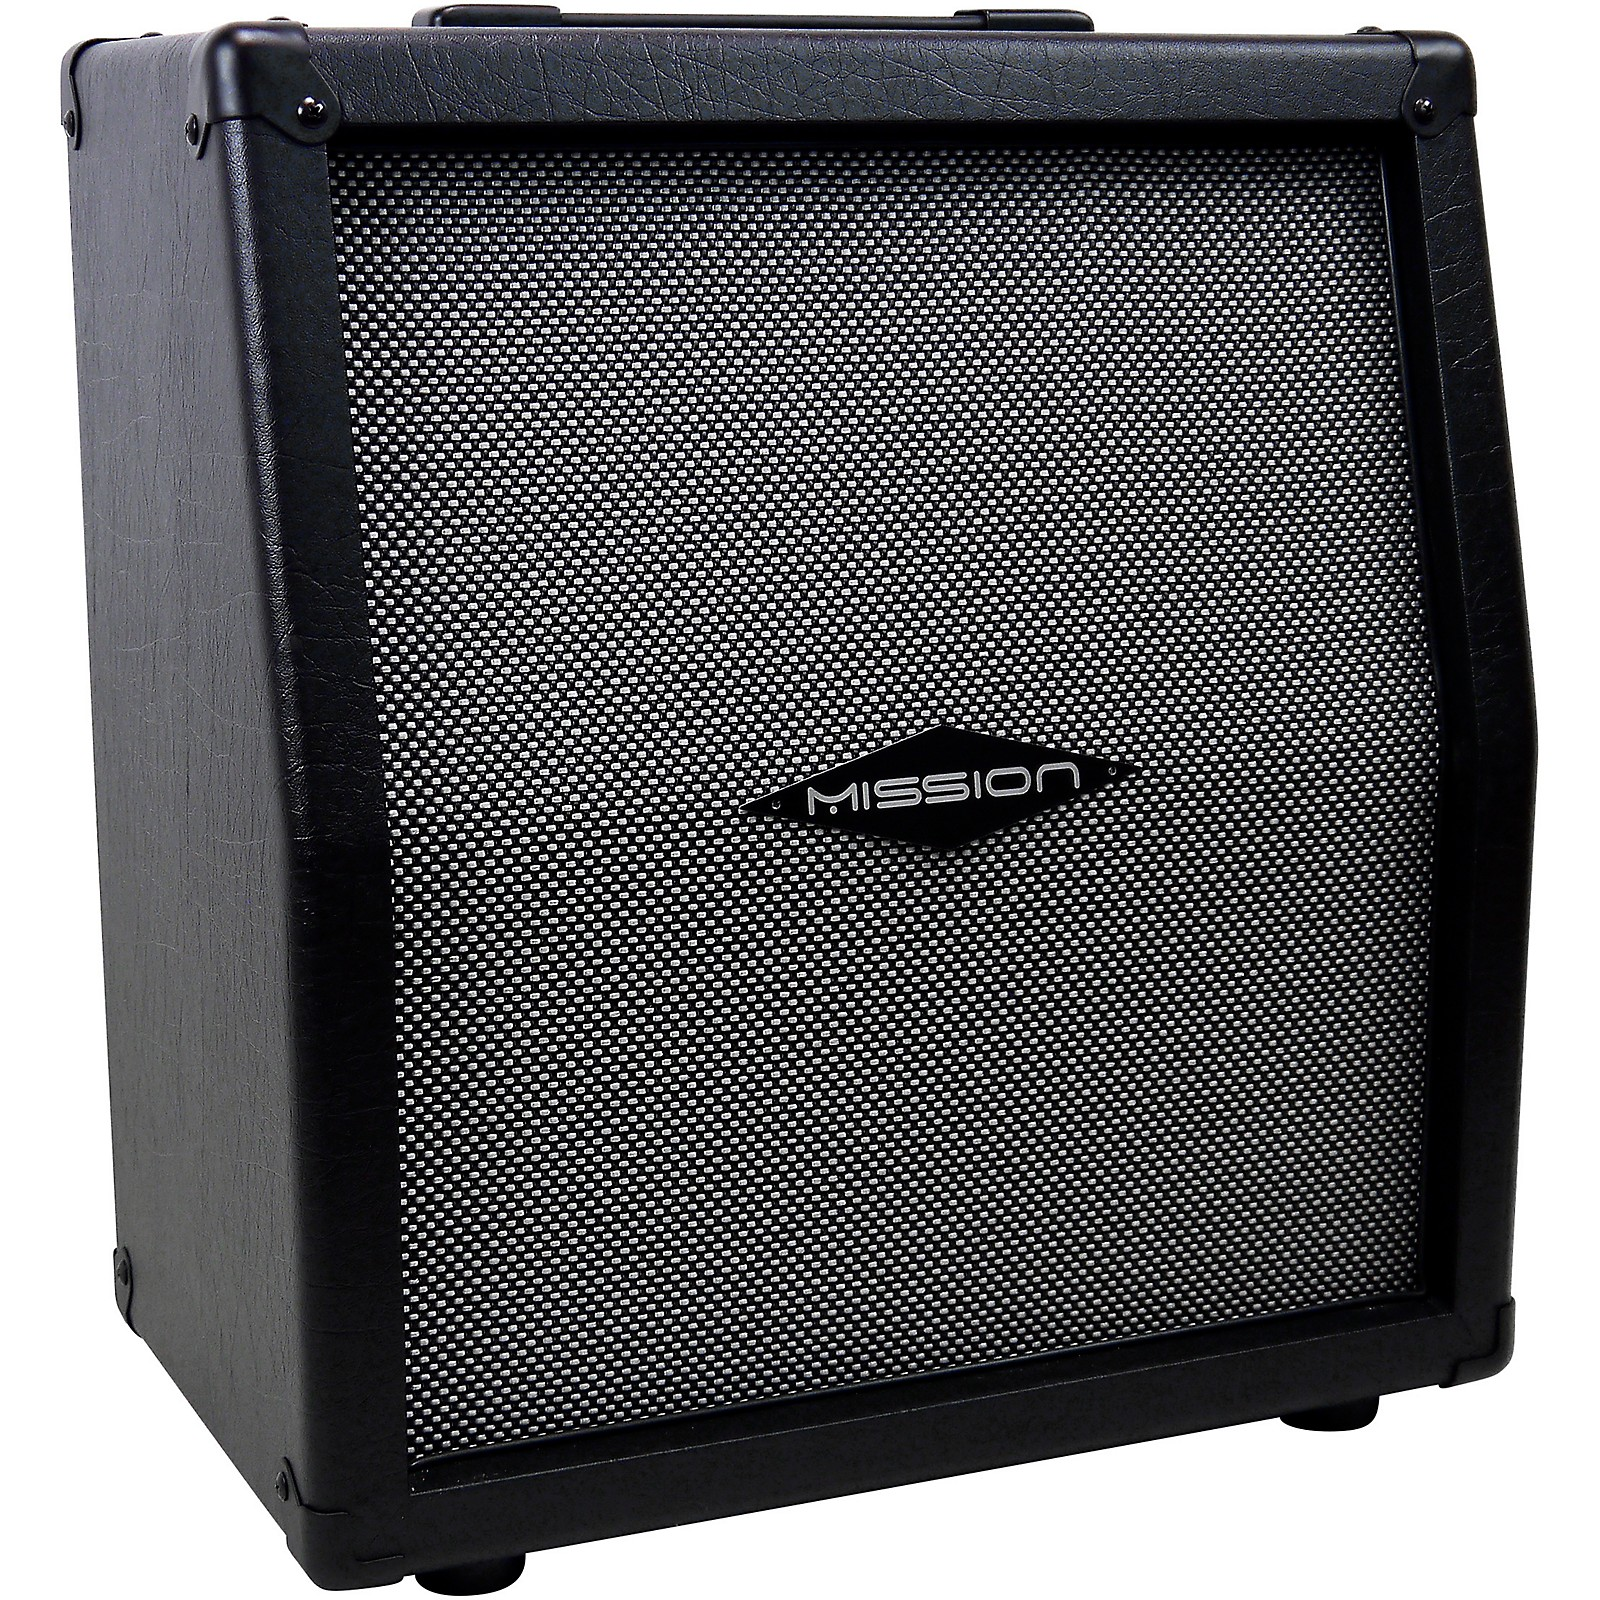 Open Box Mission Engineering GM-Io Powered Guitar Speaker Cabinet